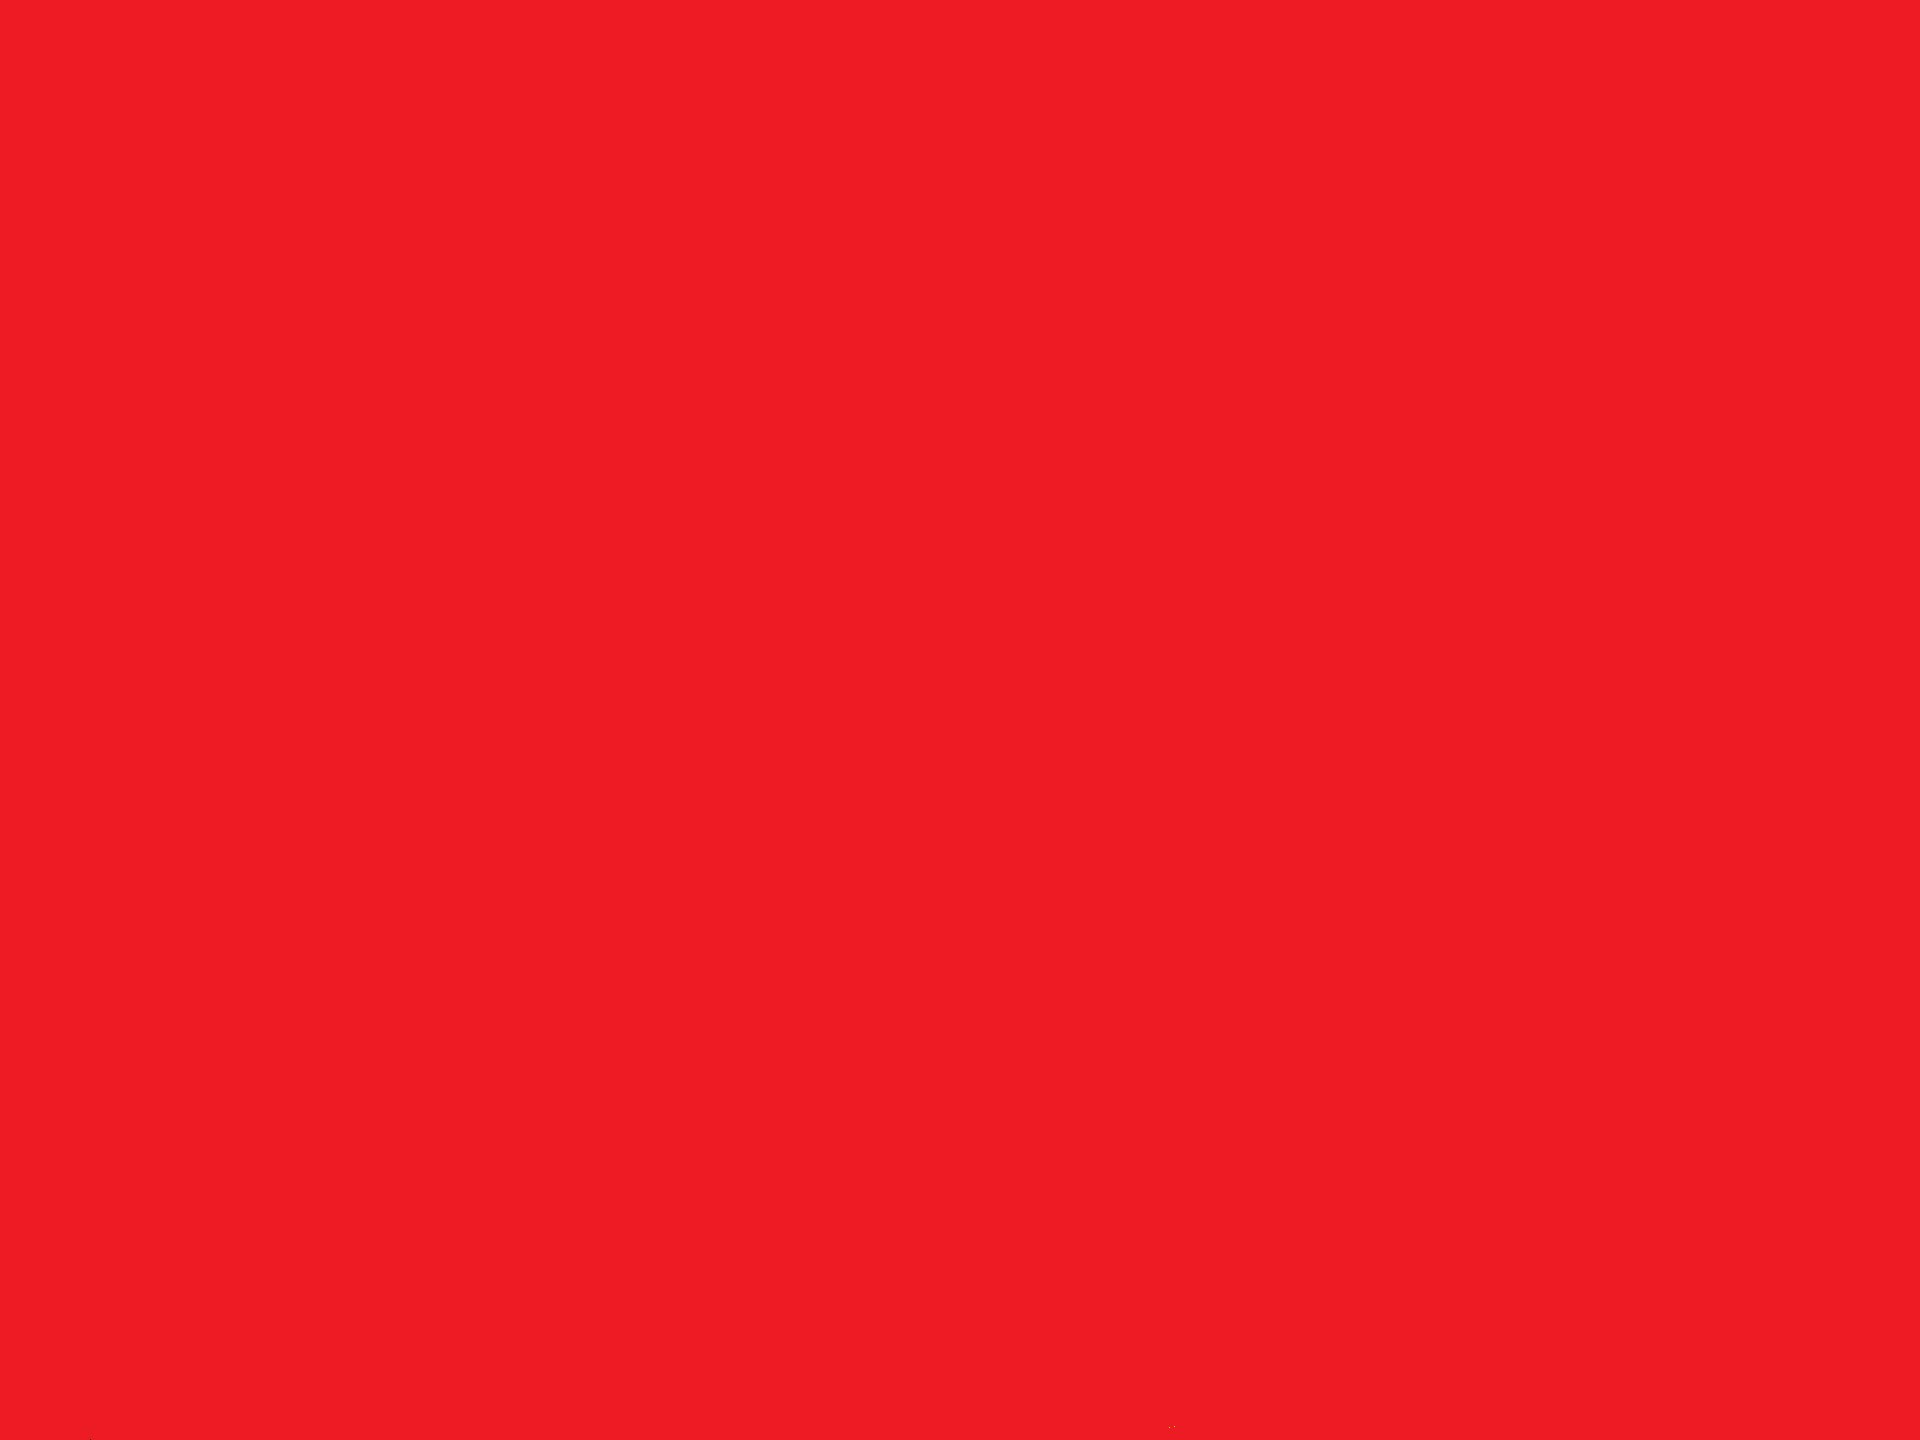 background red  u00b7 u2460 download free stunning wallpapers for